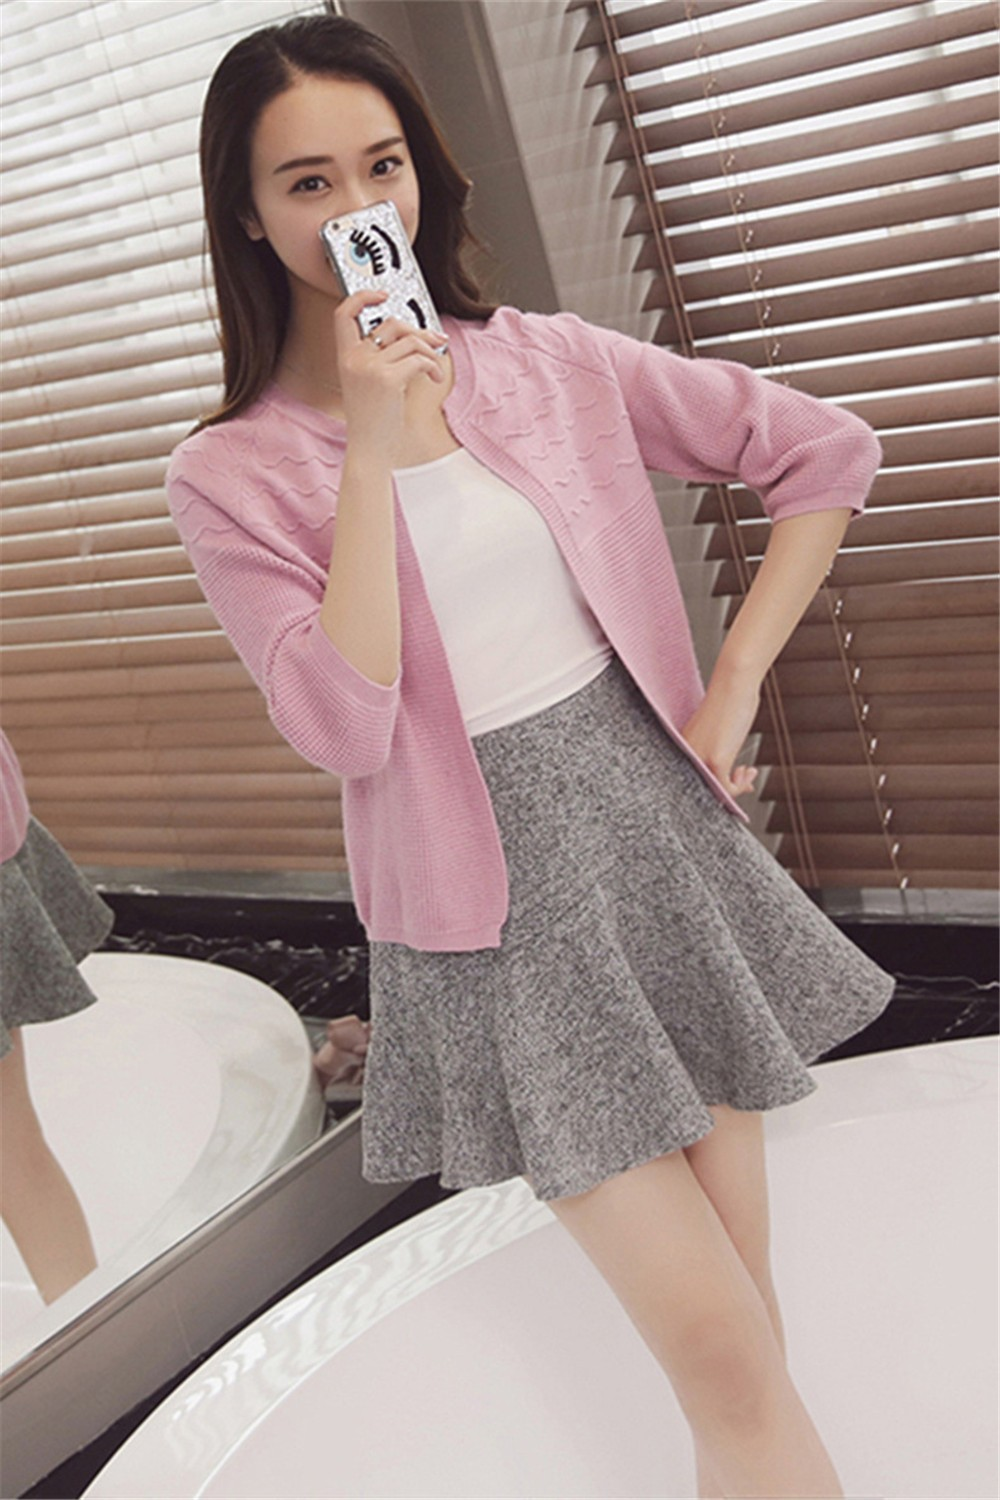 2016 Spring&Autumn Casual Sweater Women Cardigan Sweater Solid Color Open Stitch Women\'s Cotton Knitted Outerwear Sweater (25)